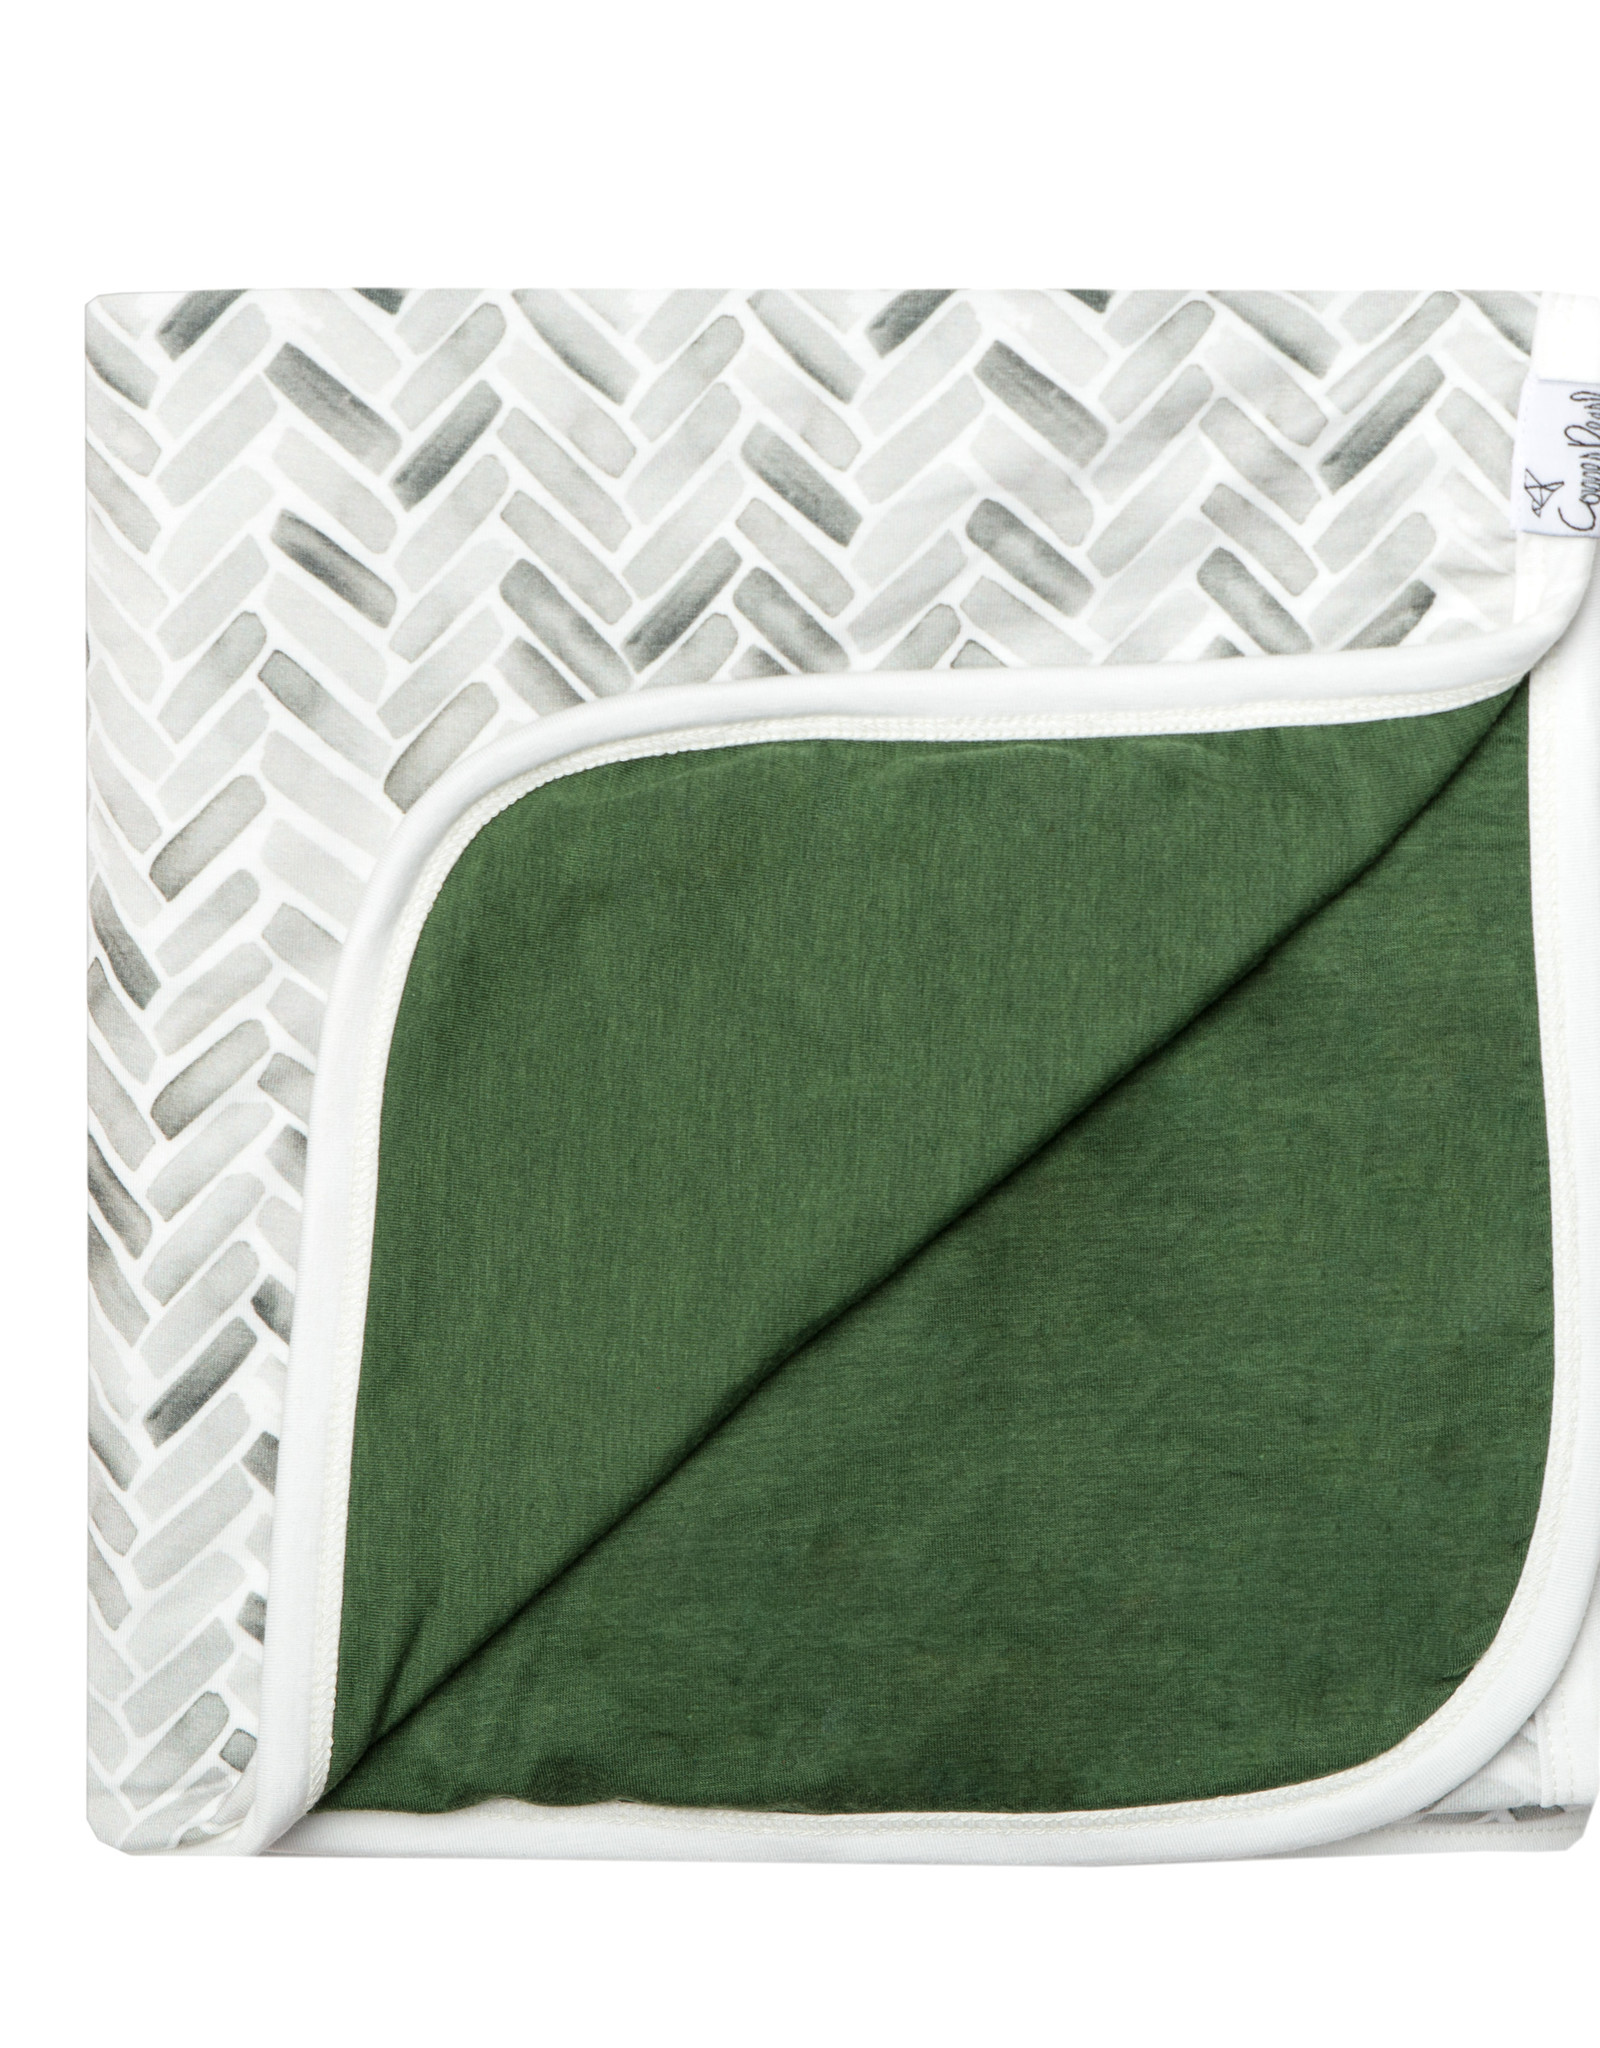 Alta 3-Layer Stretchy Quilt